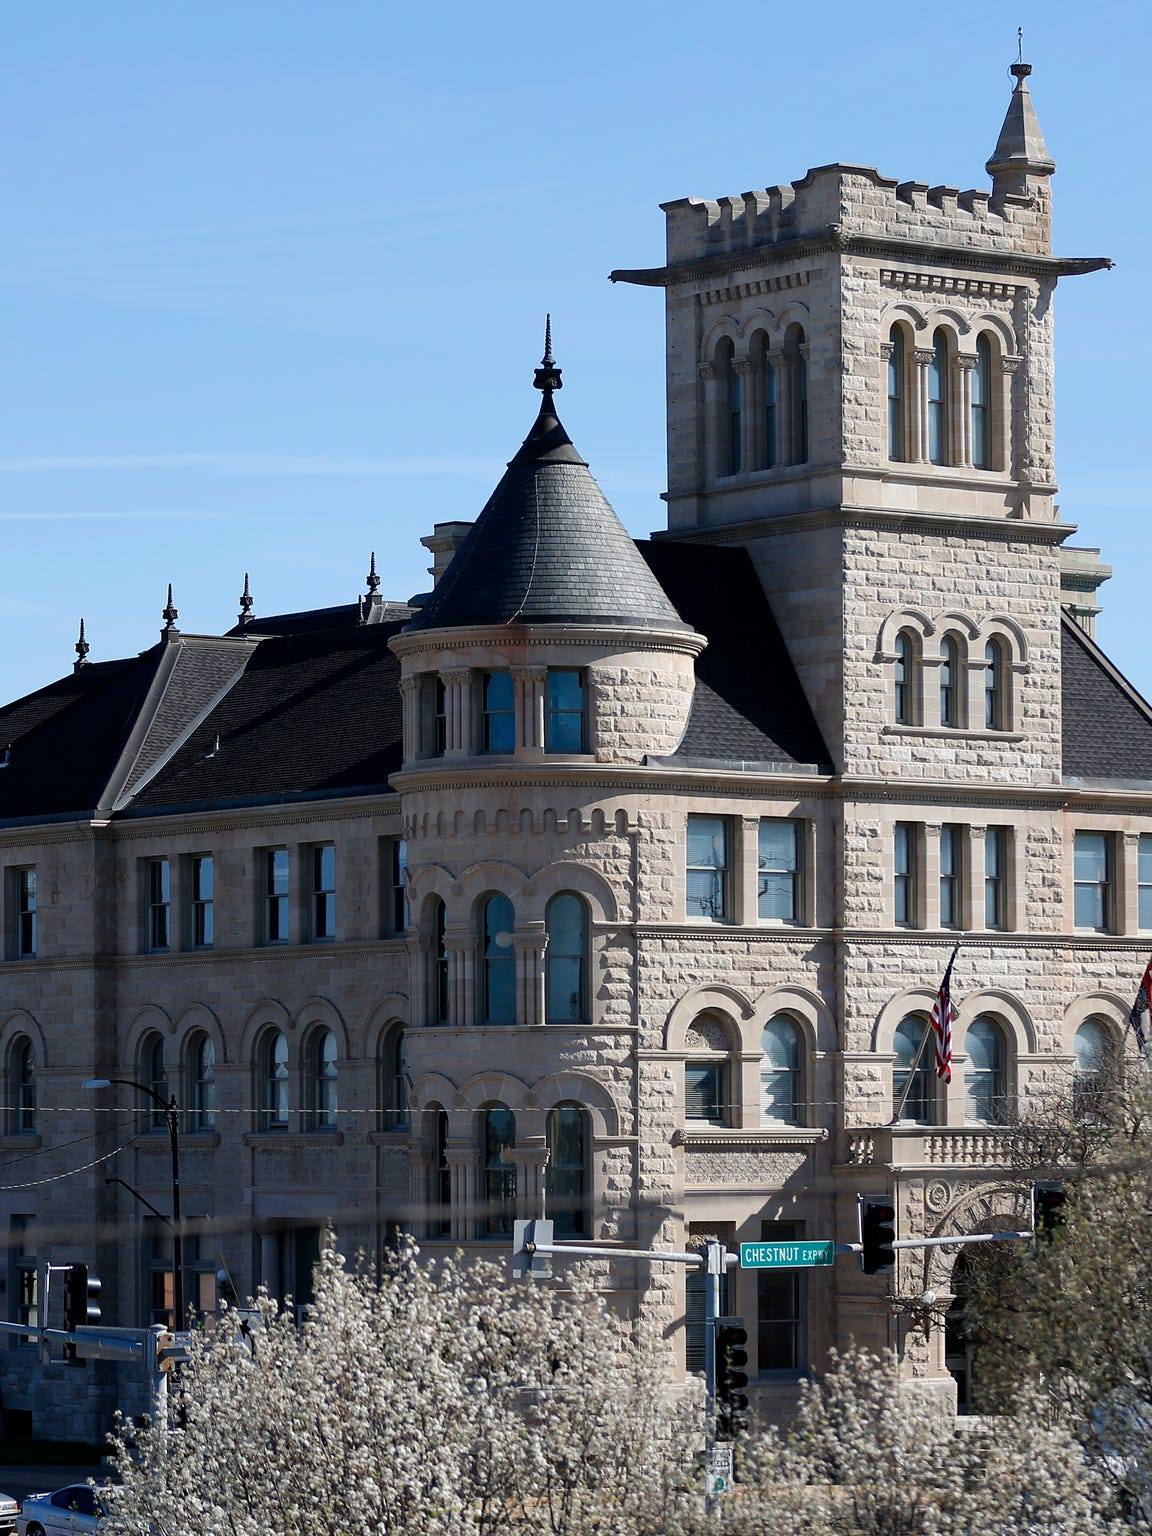 Springfield is holding municipal elections on April